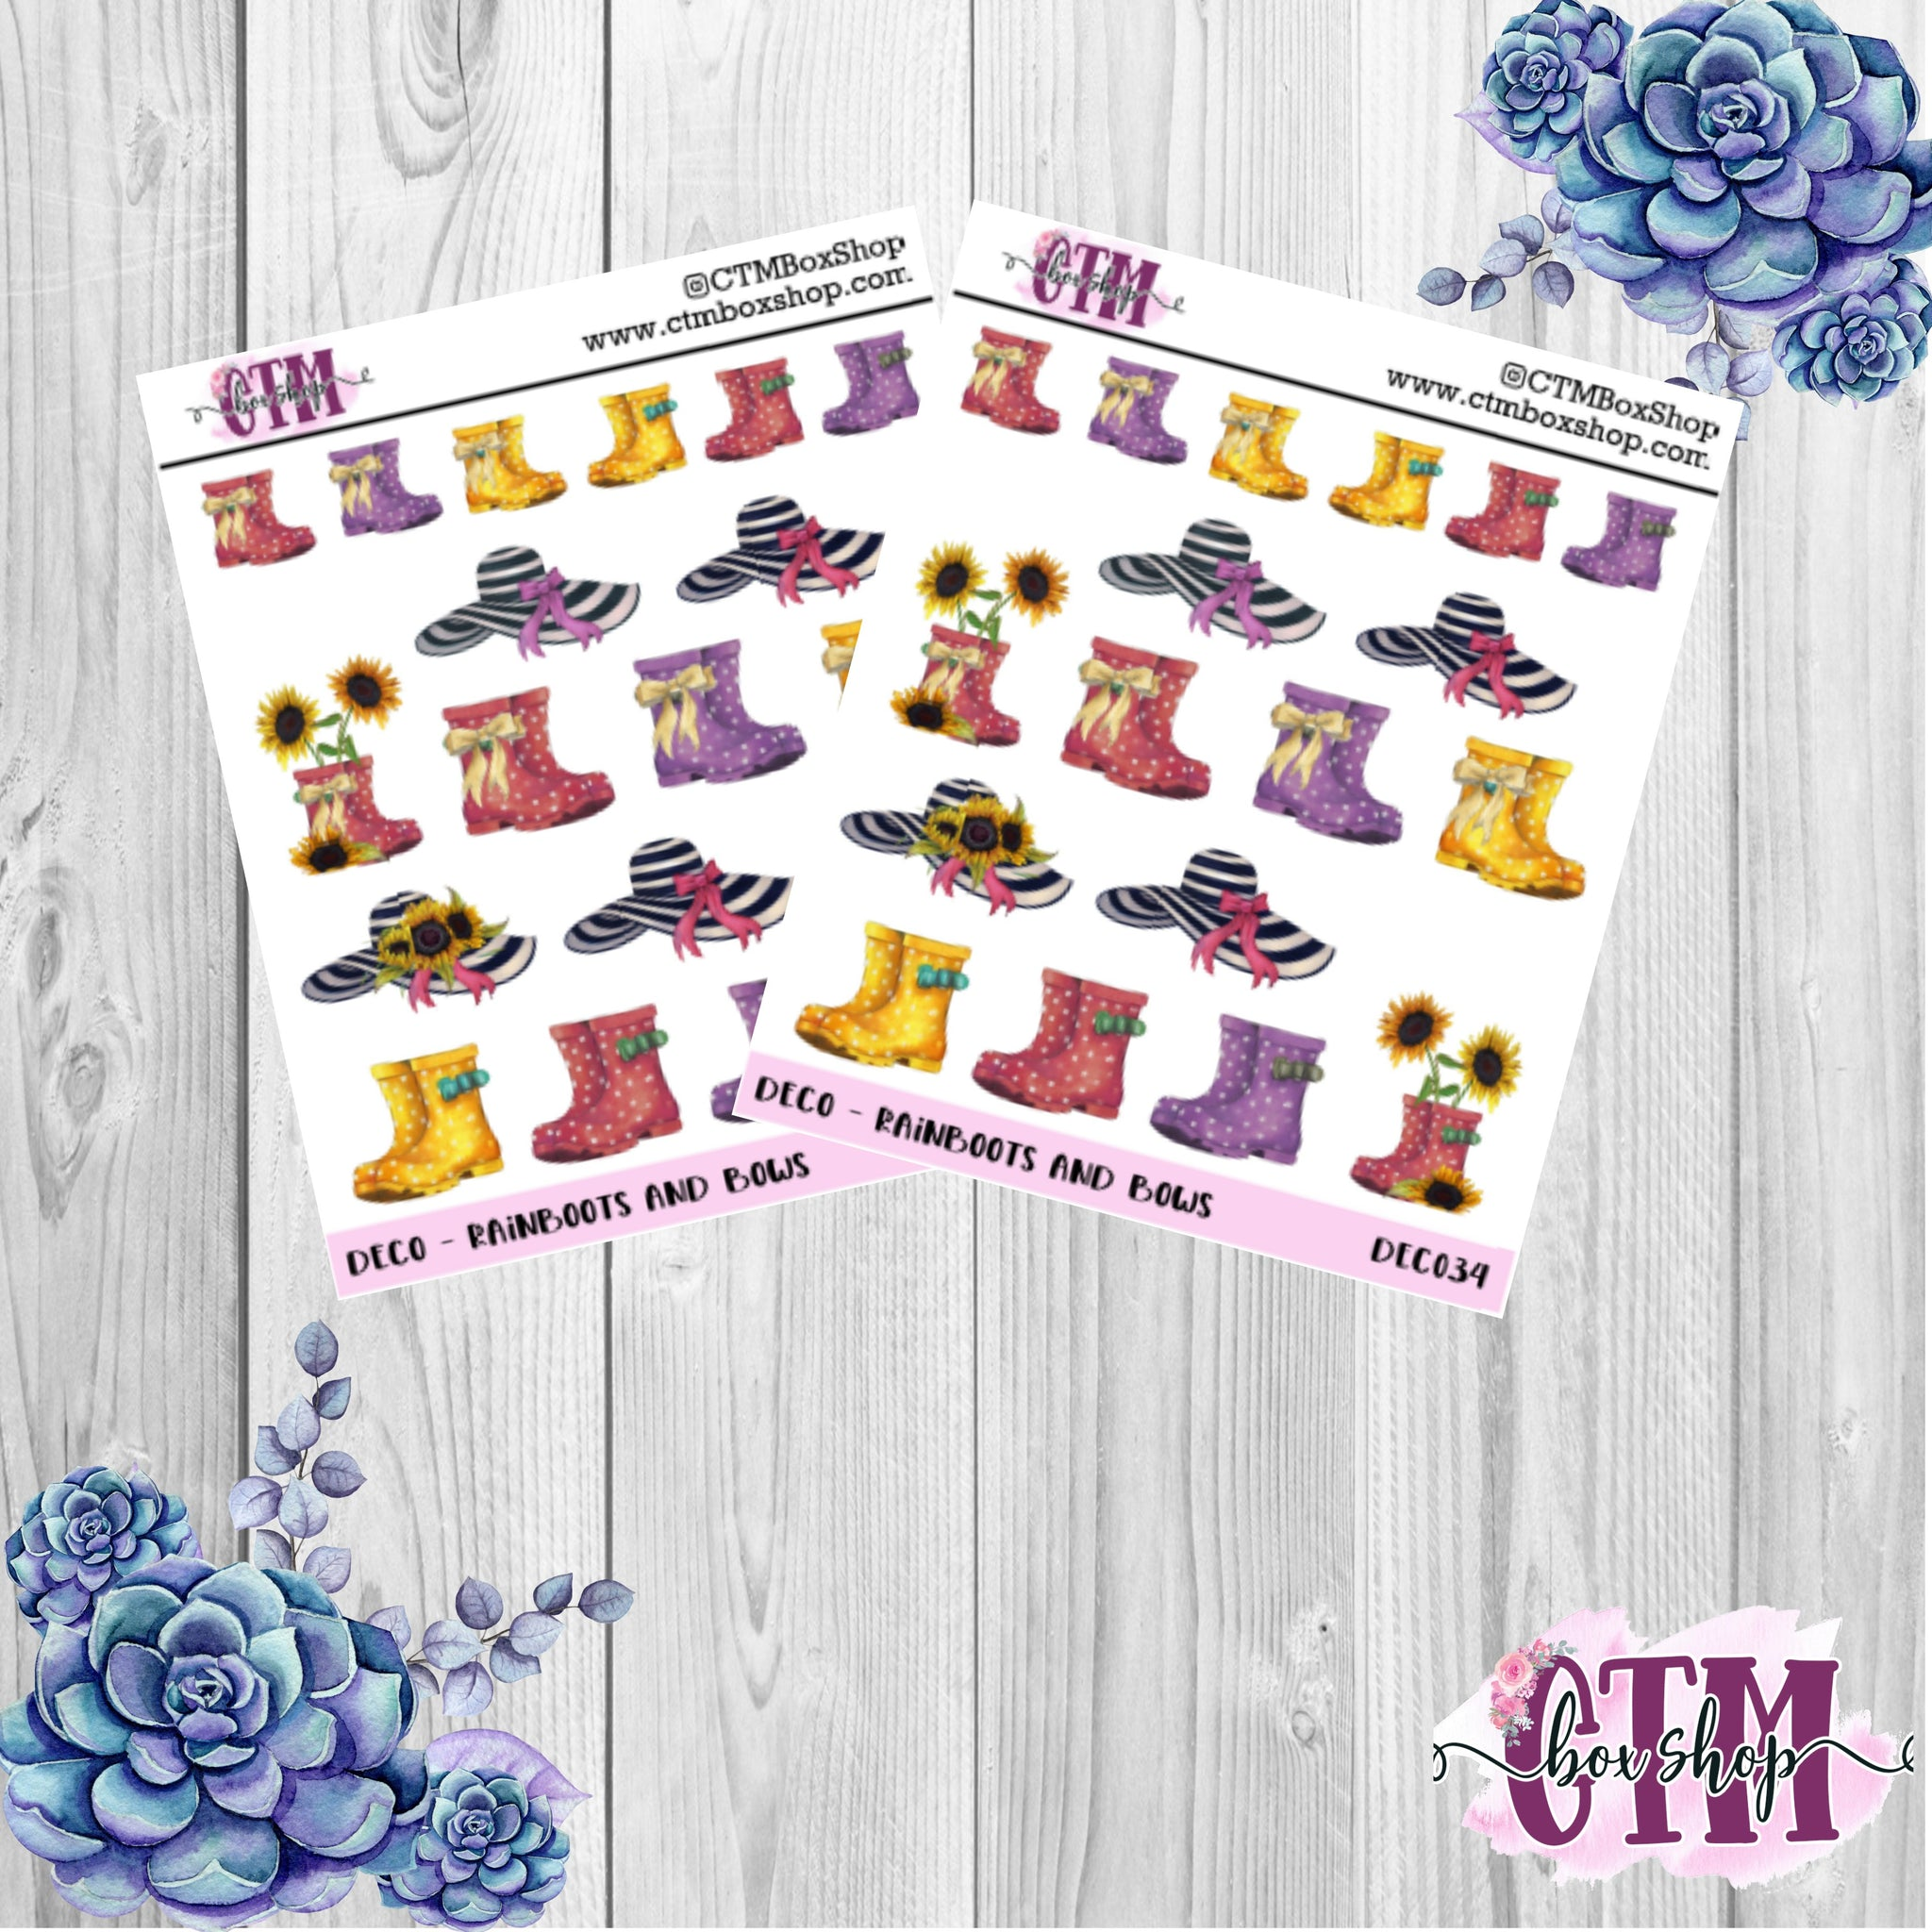 Rainboots and Bows Stickers   Planner Stickers   Deco Stickers